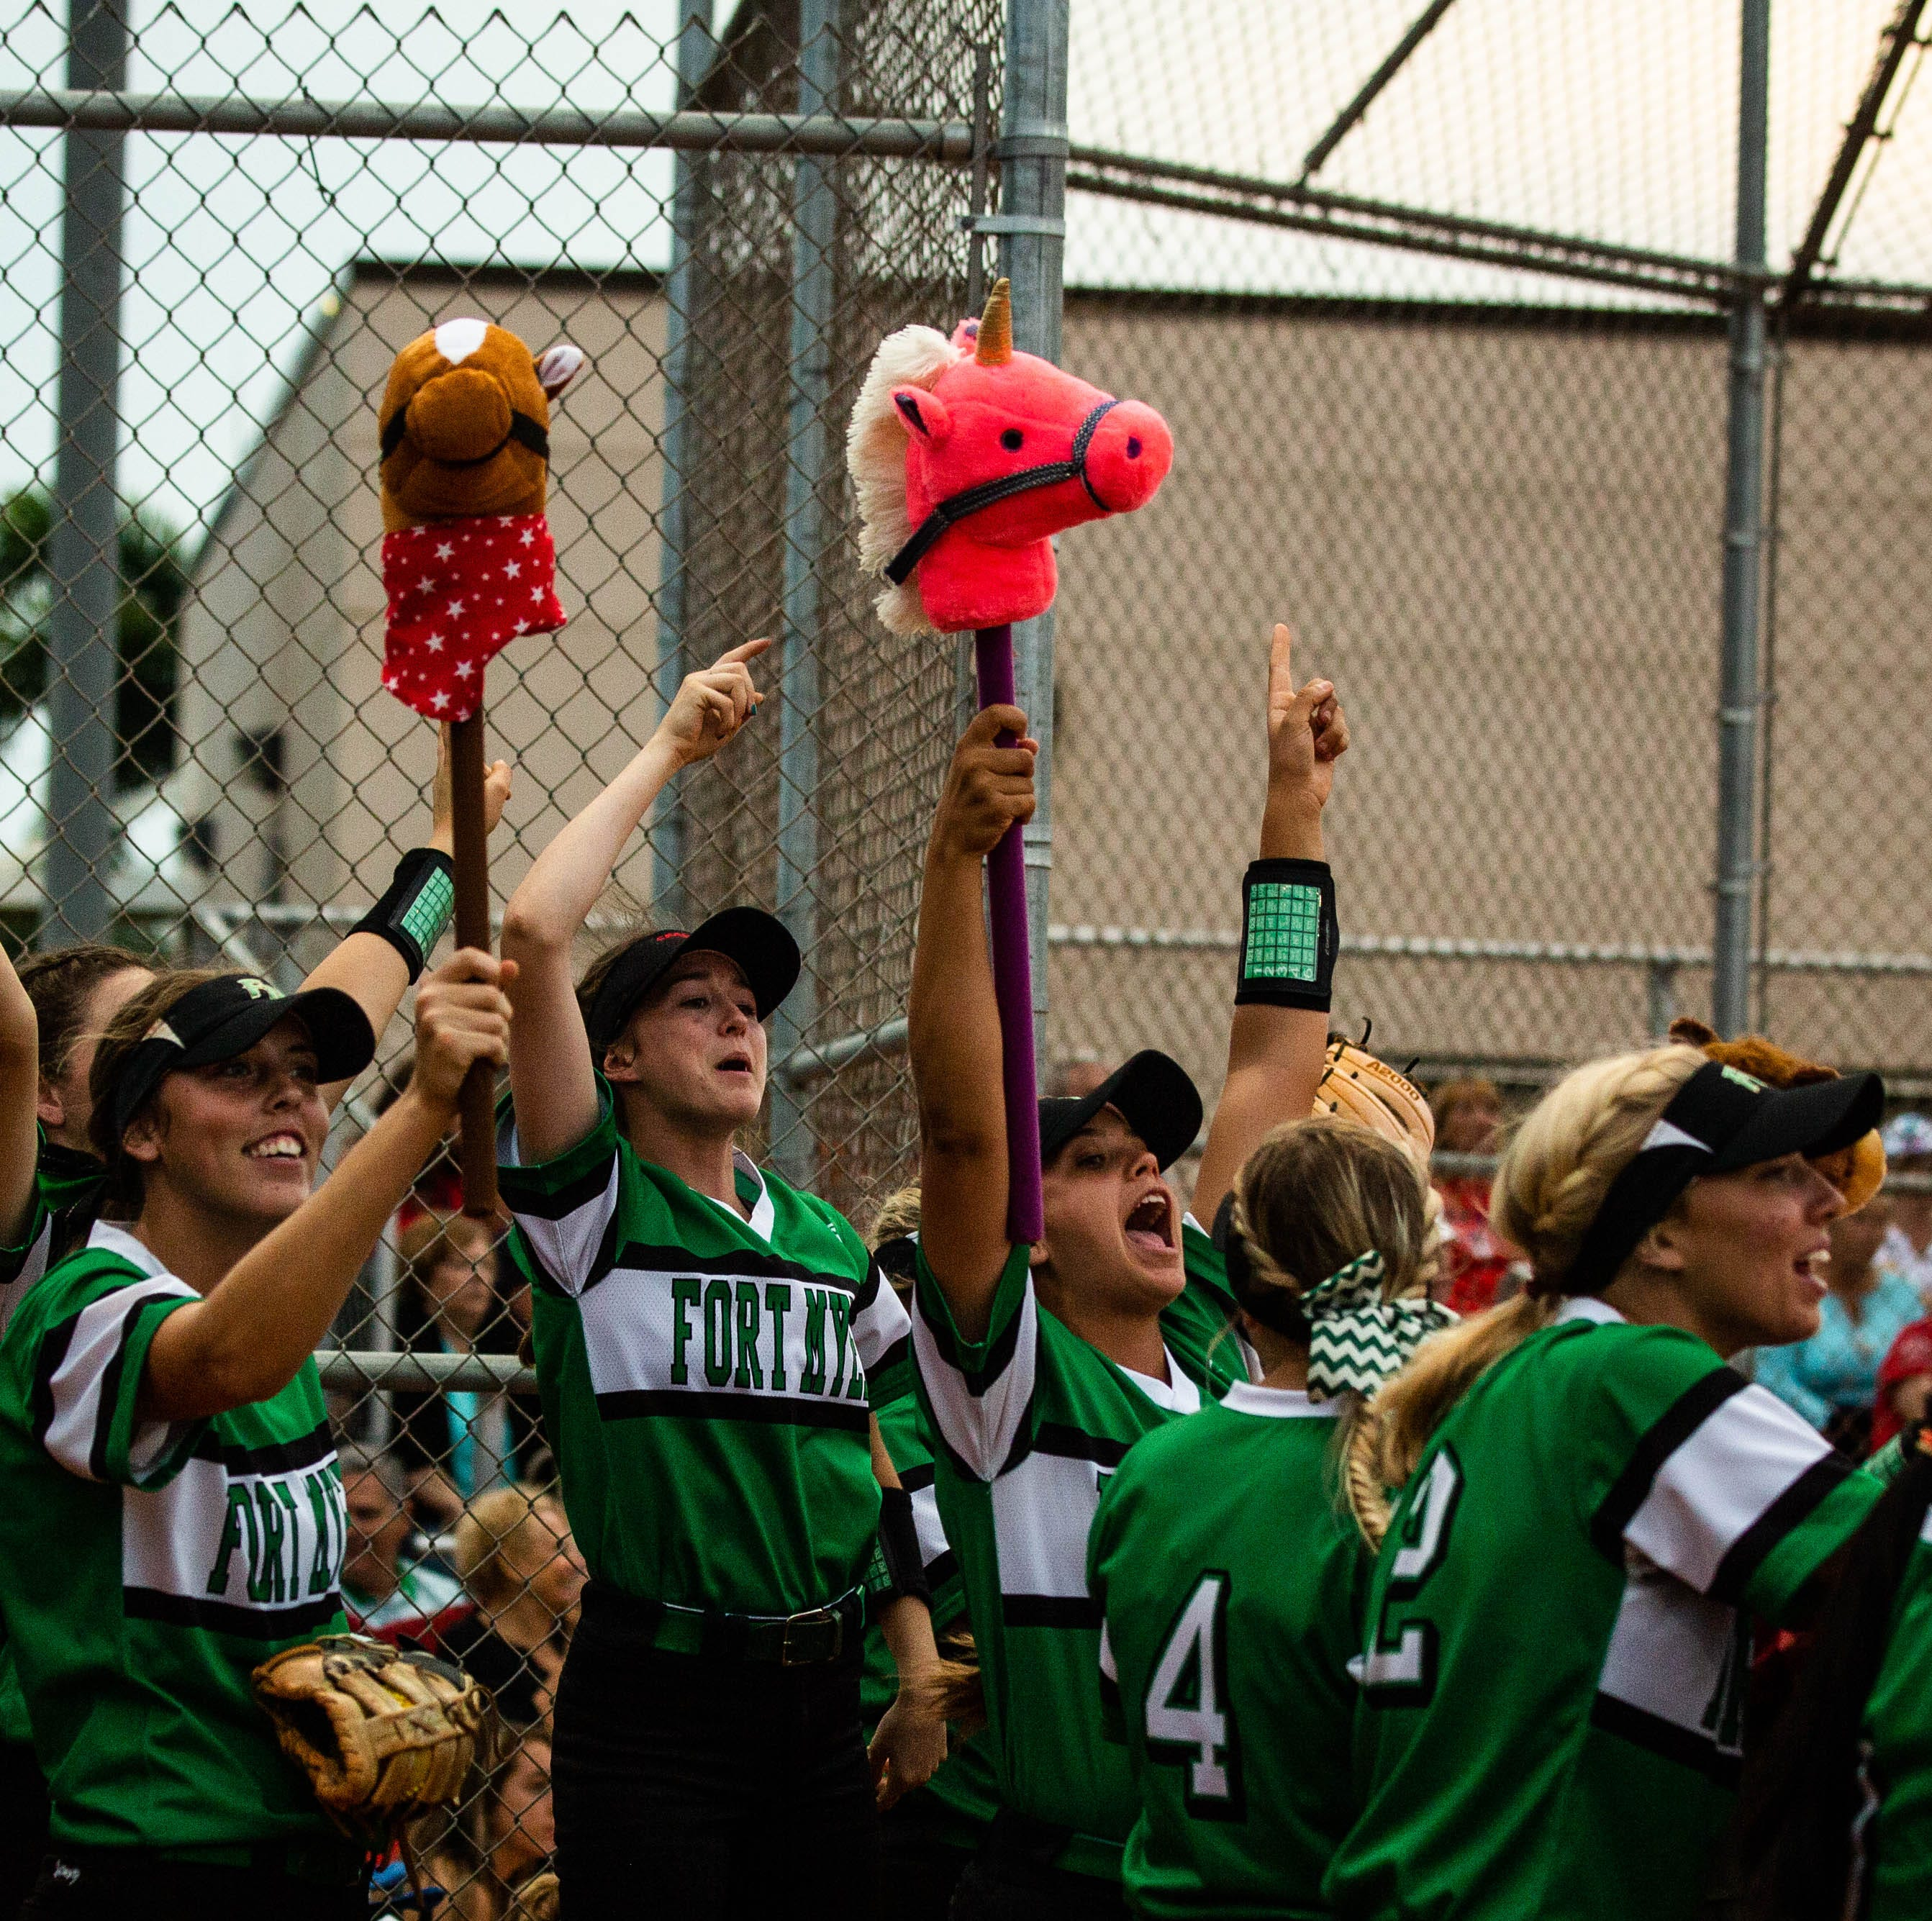 Playoffs: Fort Myers, North FM softball win late; Canterbury, Seacrest baseball advance